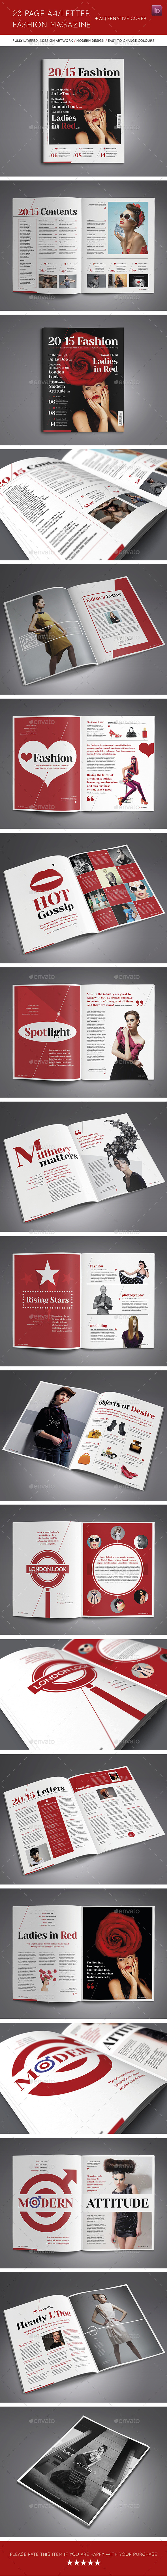 28 Page A4/Letter Fashion Magazine and Extra Cover - Magazines Print Templates